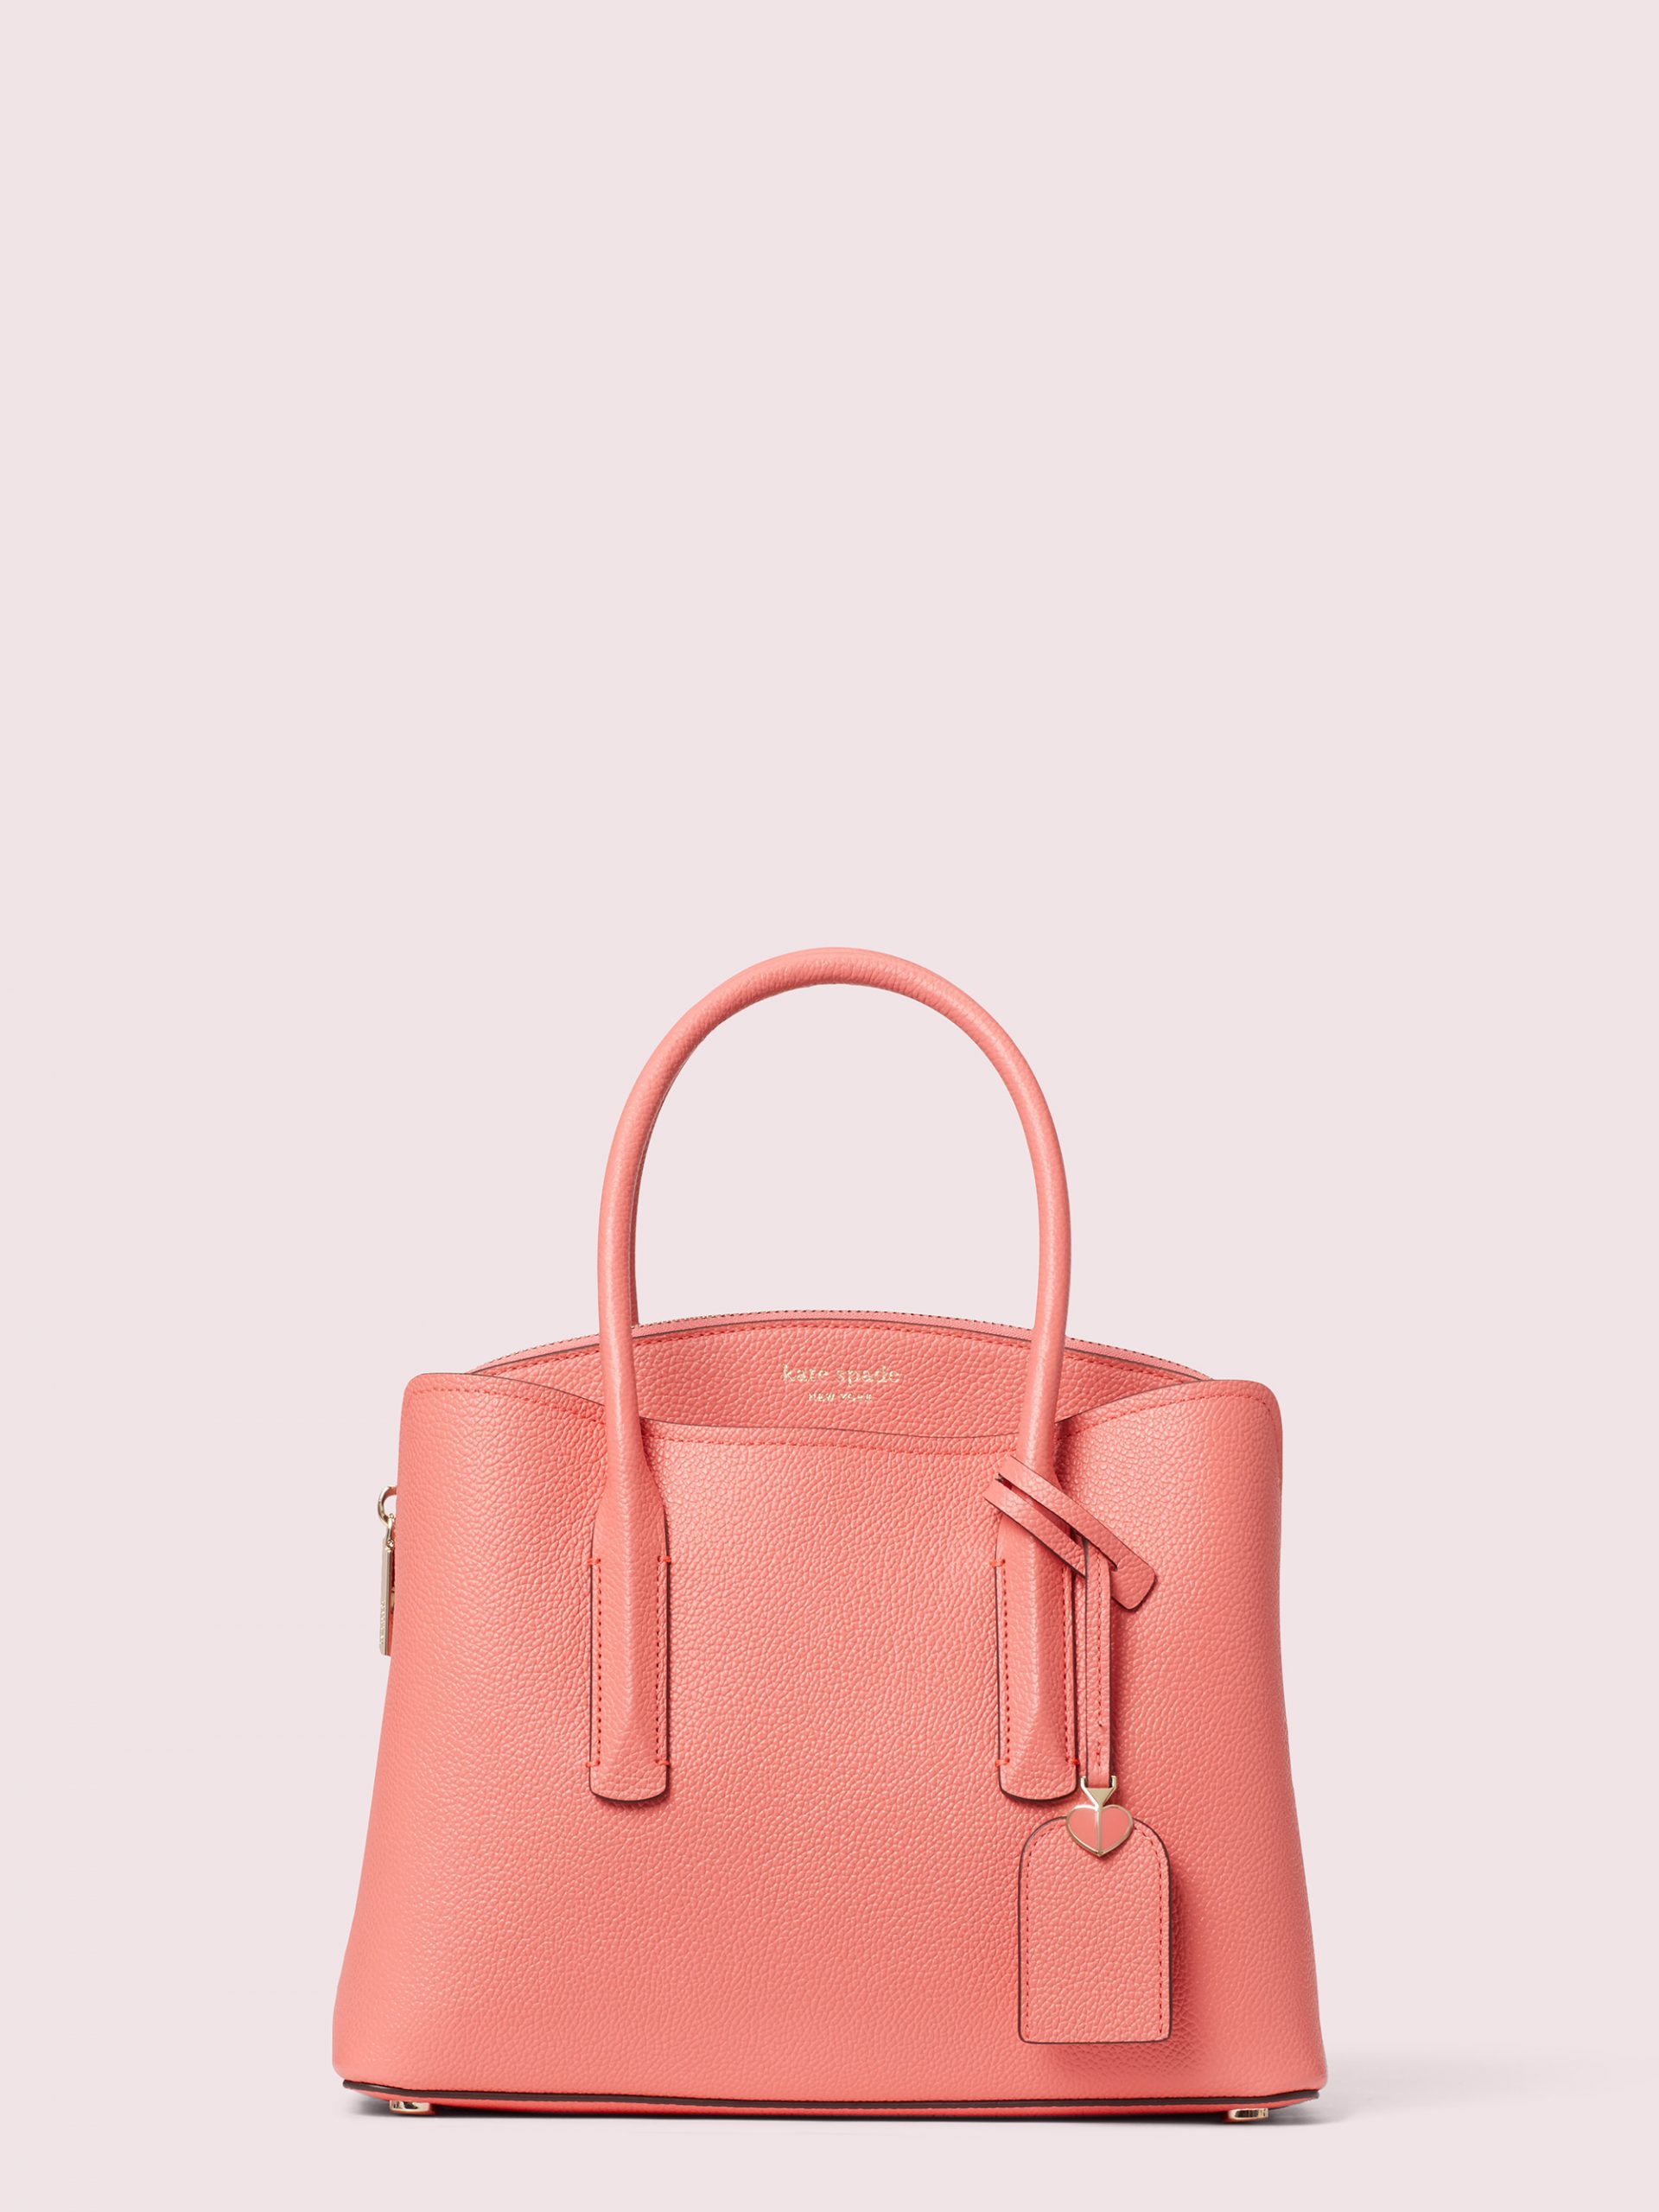 Valentine Gift Idea Kate Spade Margaux Medium Satchel Handbag